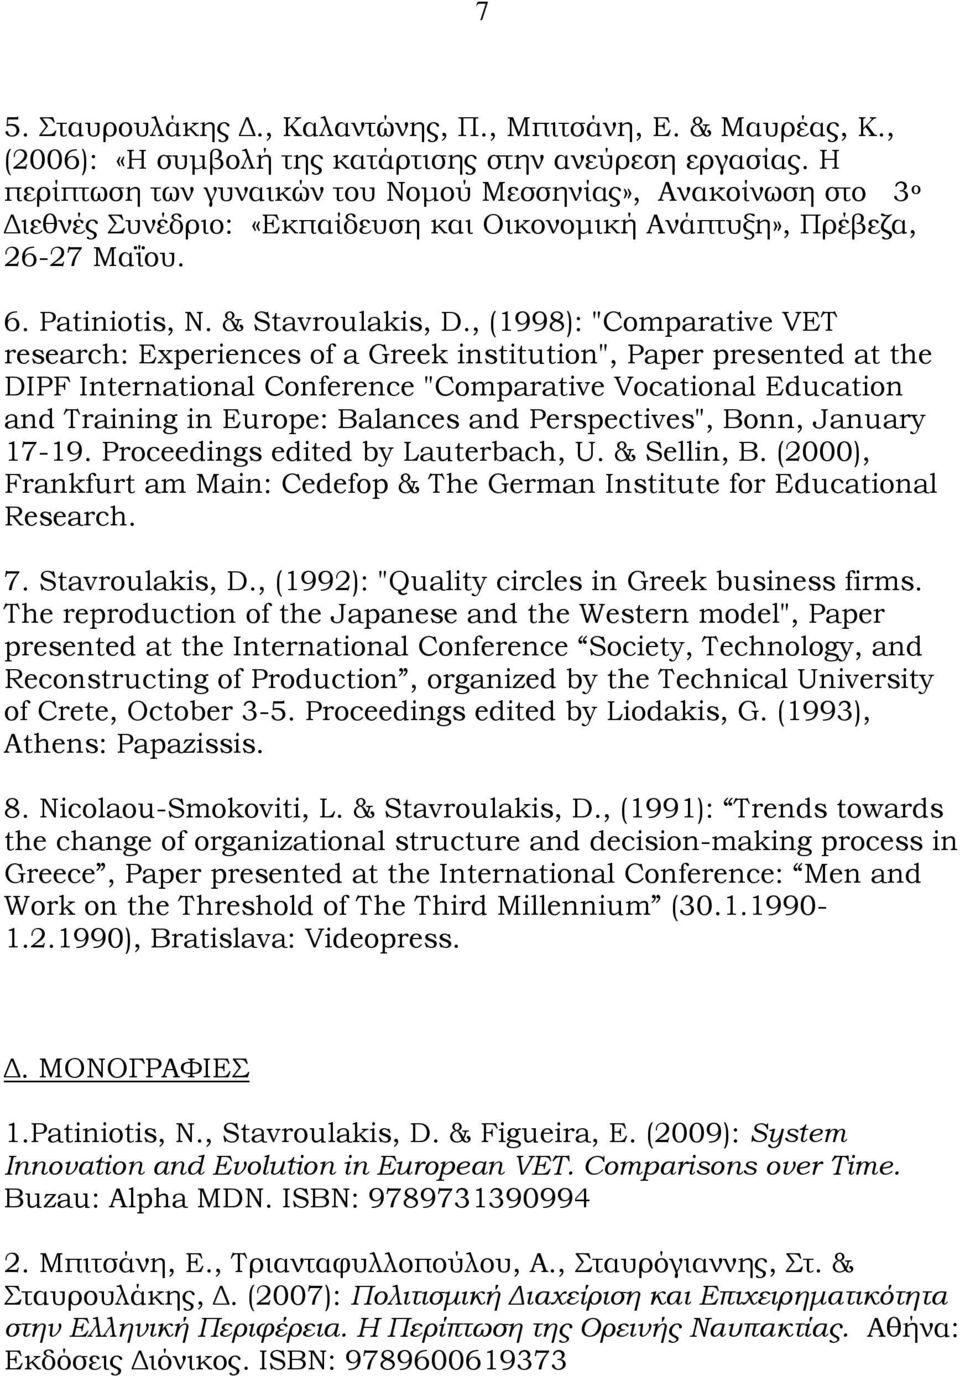 ", (1998): ""Comparative VET research: Experiences of a Greek institution"", Paper presented at the DIPF International Conference ""Comparative Vocational Education and Training in Europe: Balances and"